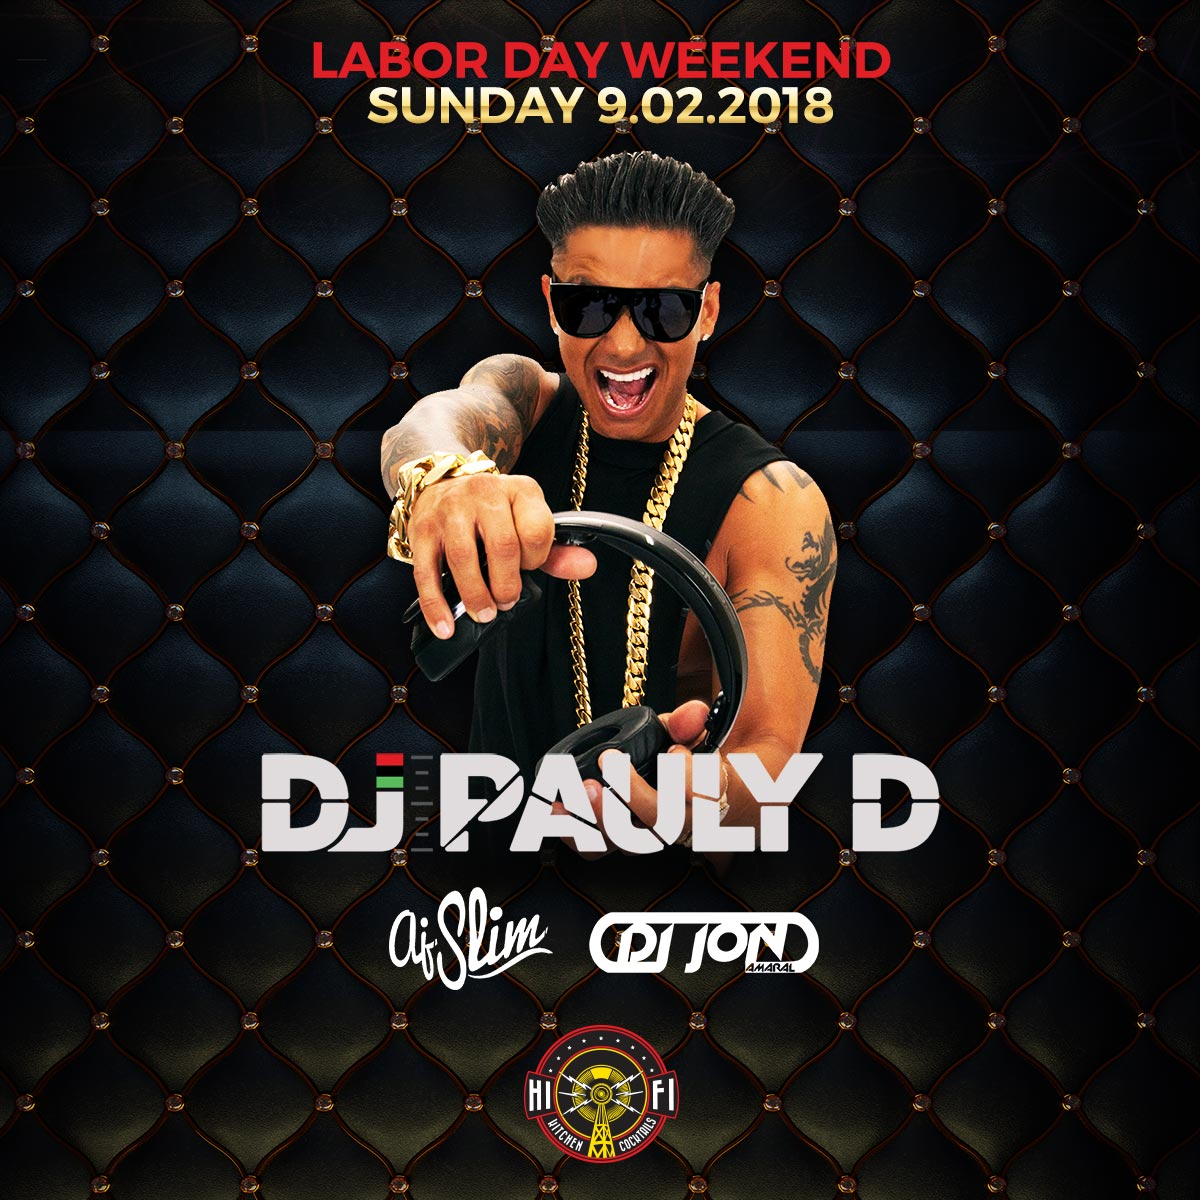 Flyer for Pauly D